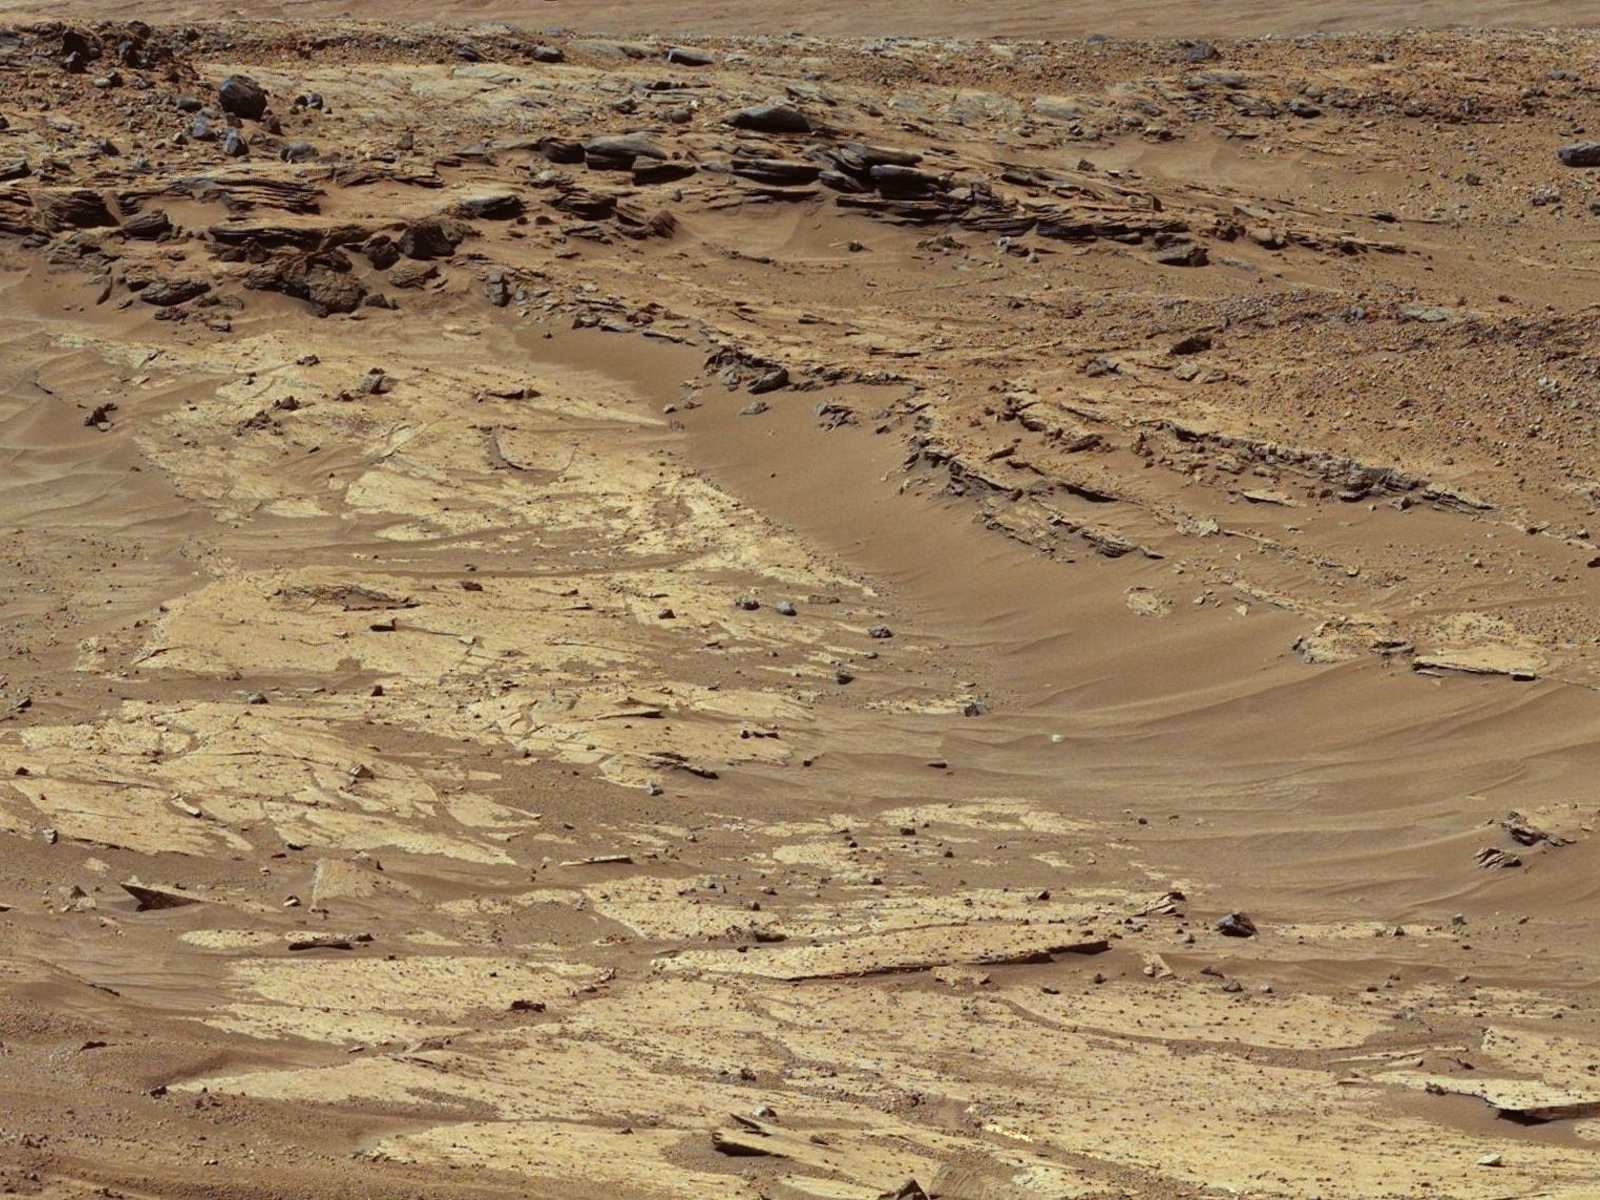 Sandstone Layers Near the Kimberley Curiosity View